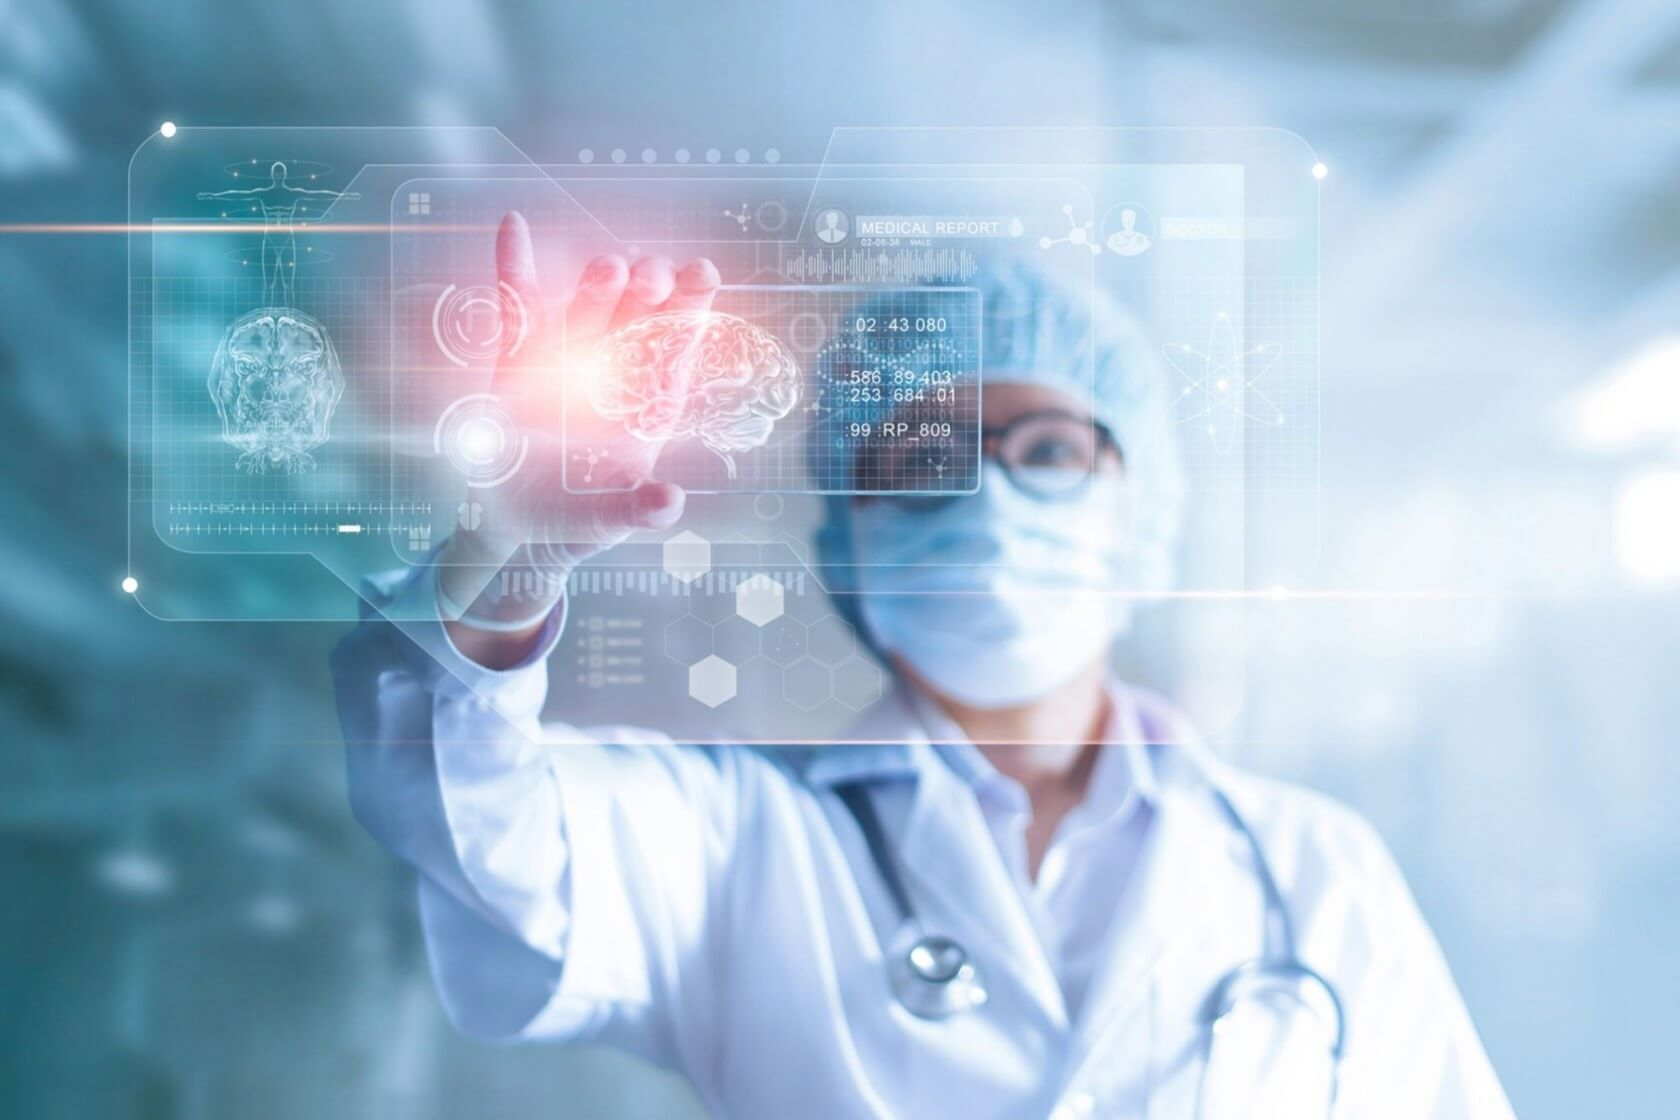 Nvidia partners with the American College of Radiology to bring free AI tools to radiologists